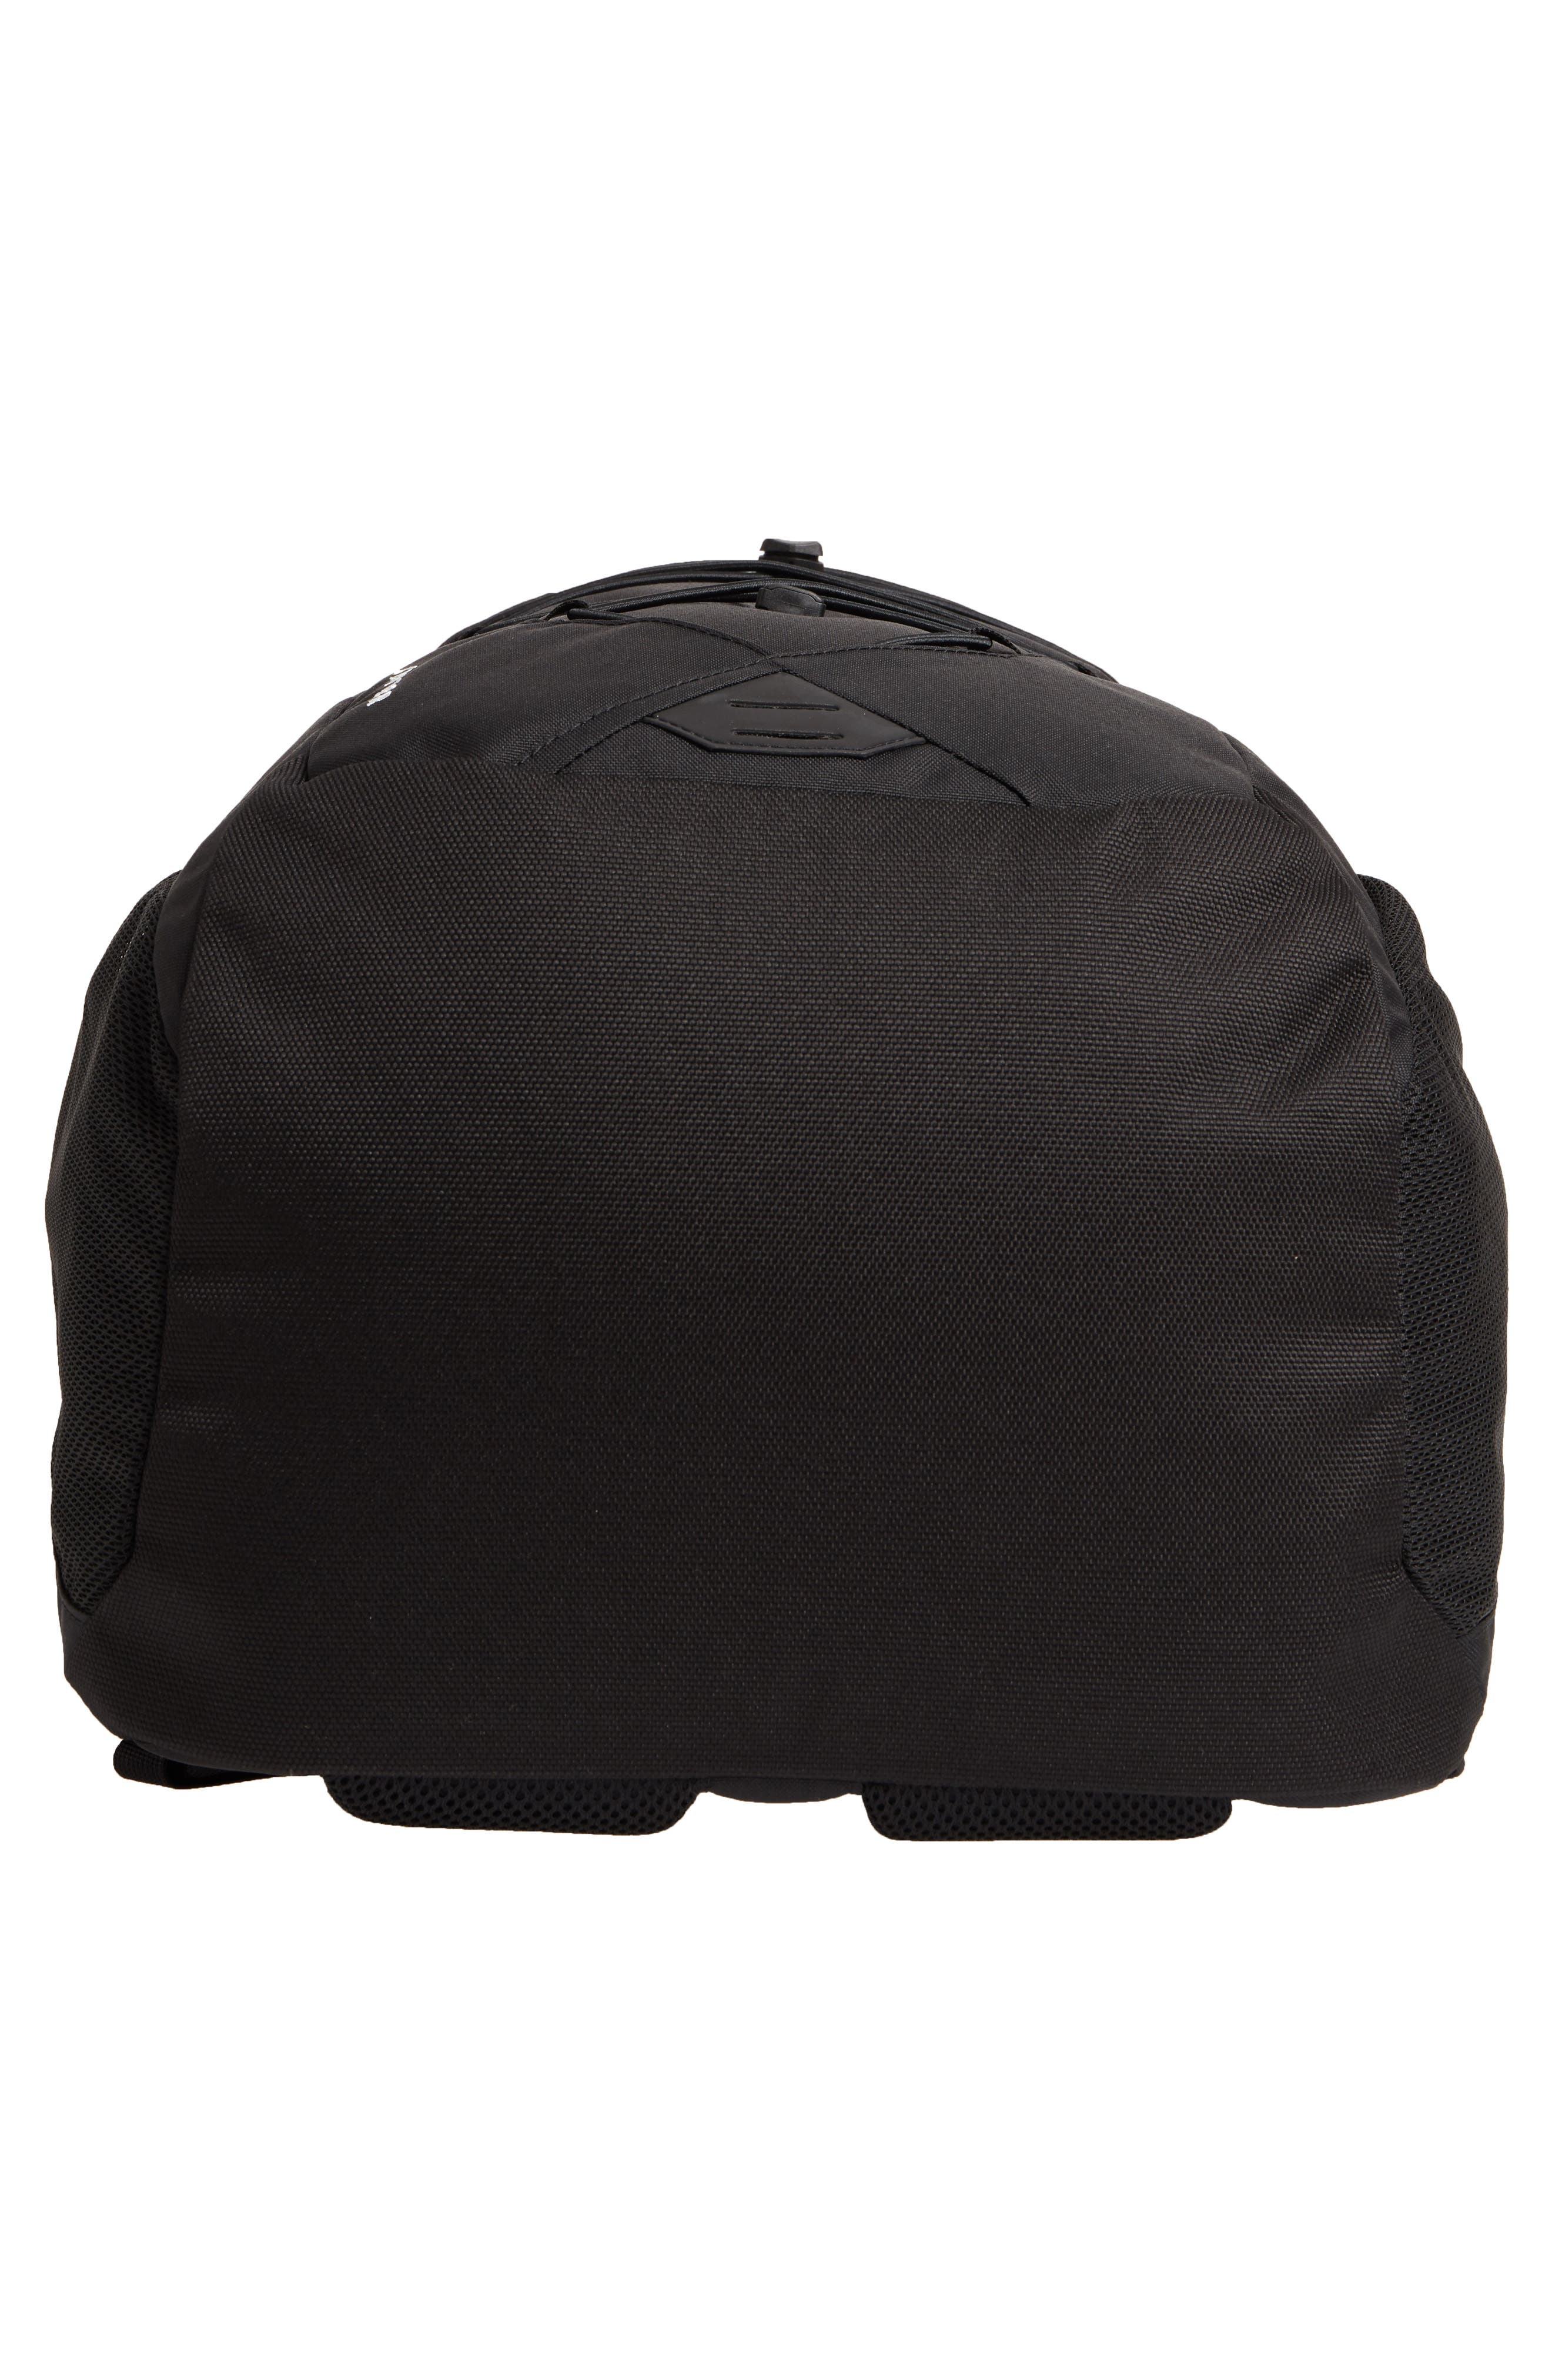 THE NORTH FACE, 'Jester' Backpack, Alternate thumbnail 7, color, TNF BLACK